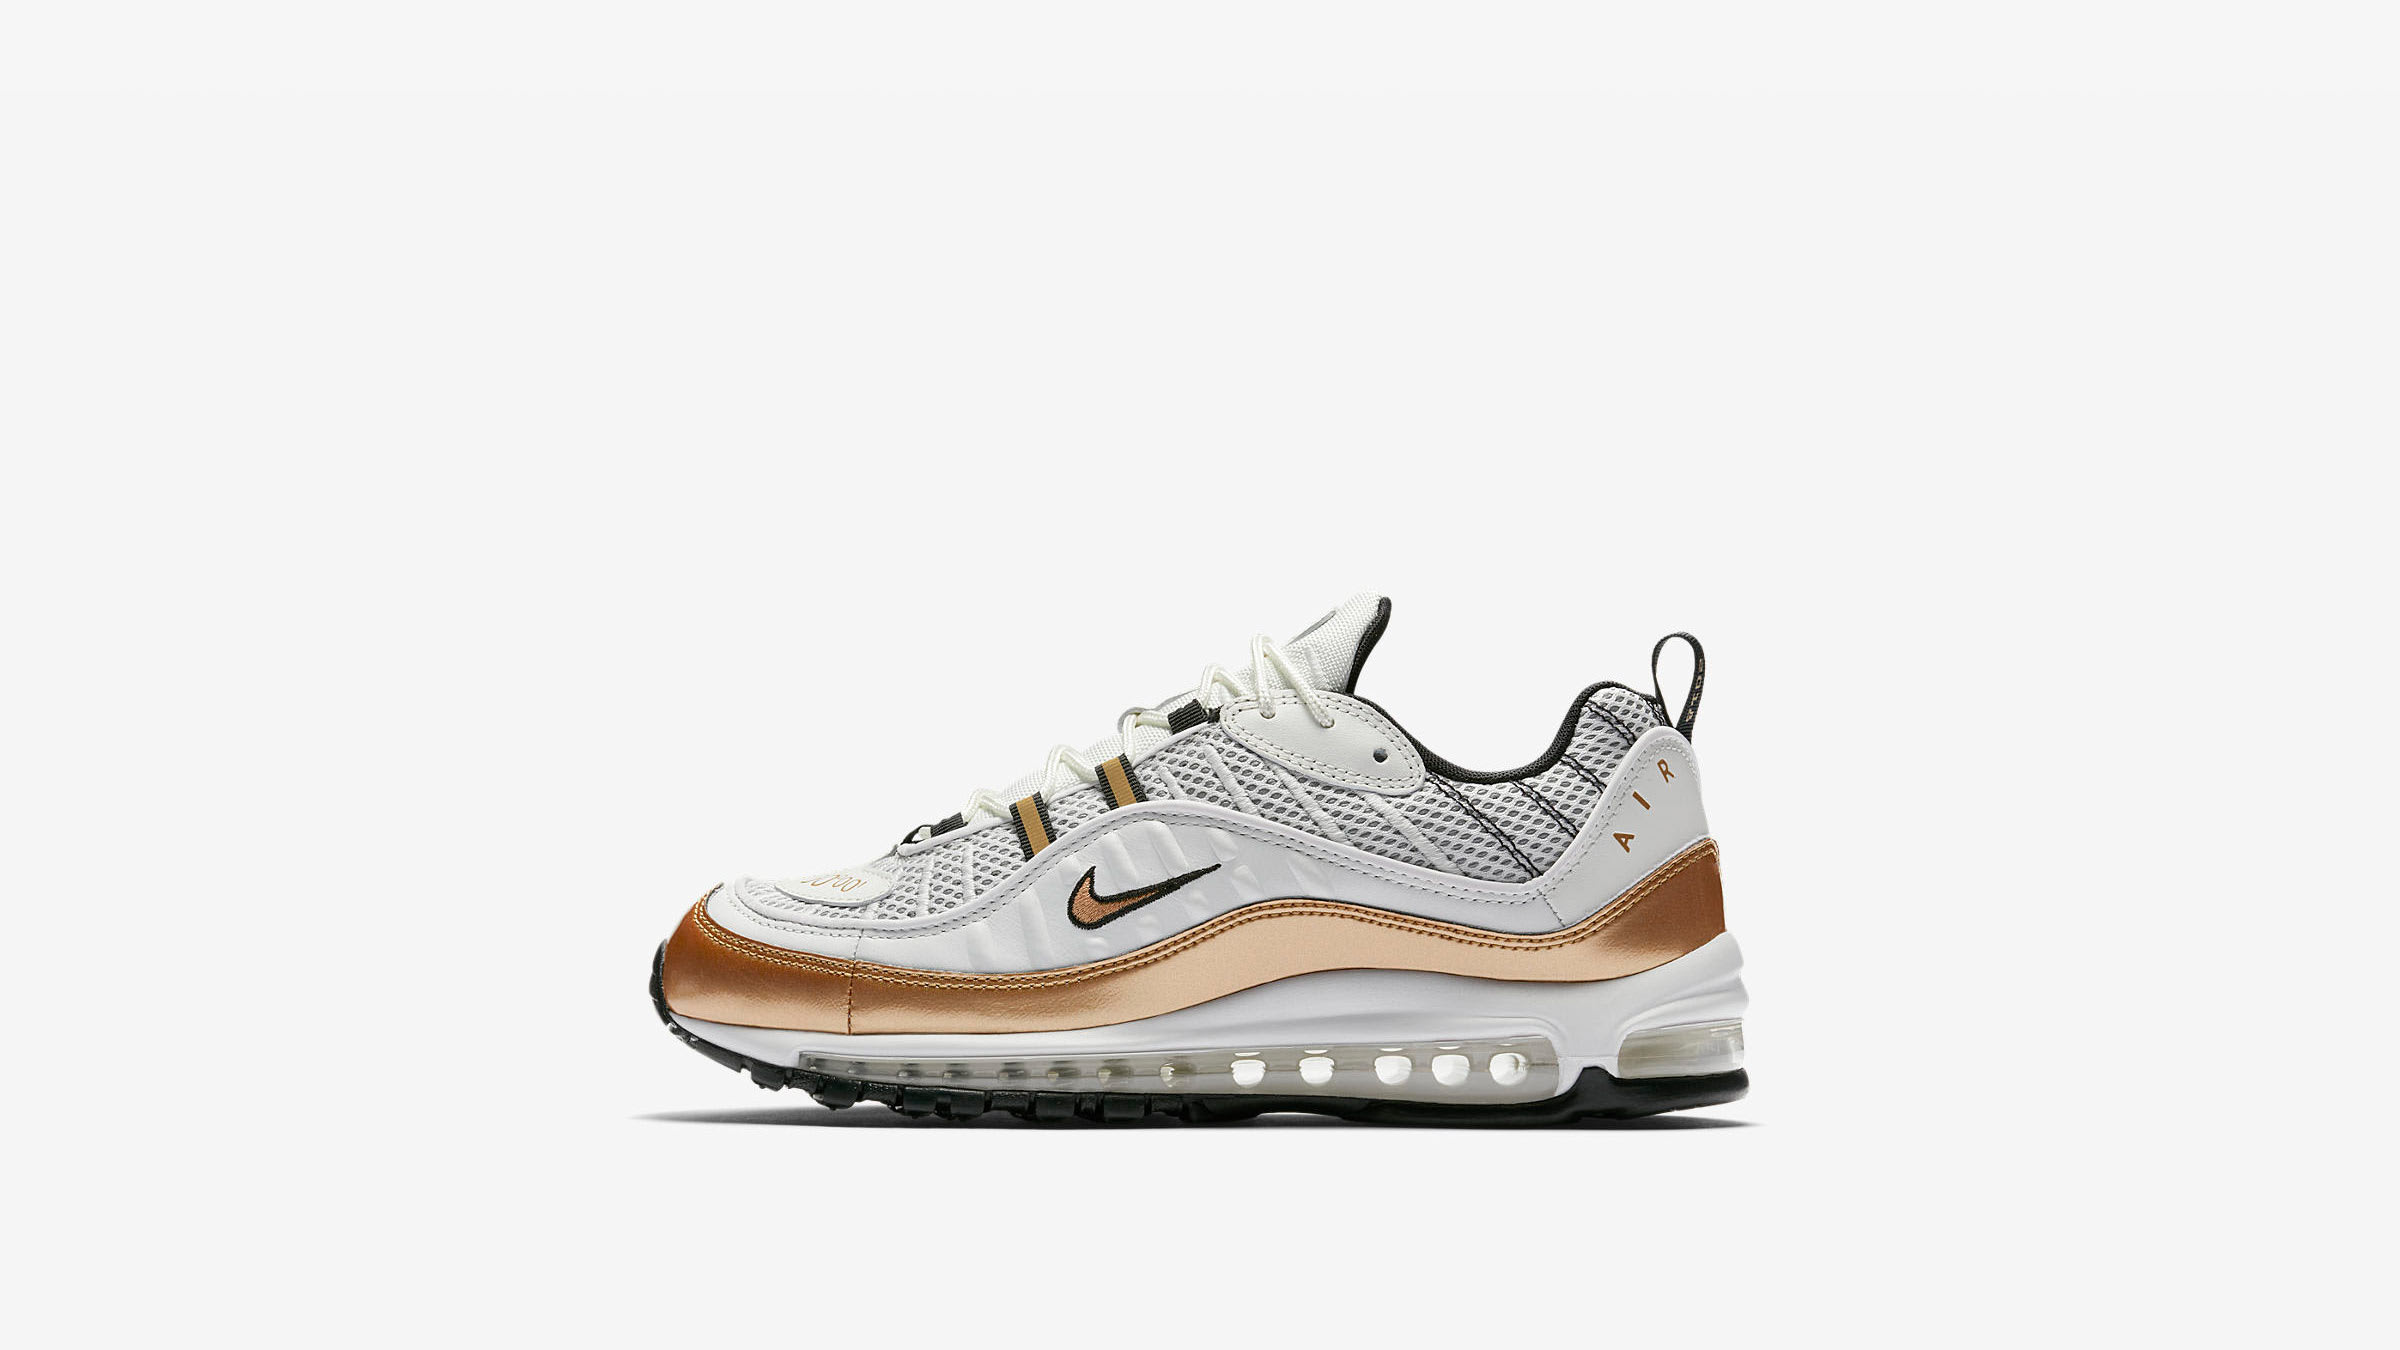 online store 1a4b2 1b4f3 In full effect for 2018, re-releases of the Air Max 98 continue with  another fresh and exciting colourway for the throwback model. Nike unveil a   GMT  pack, ...